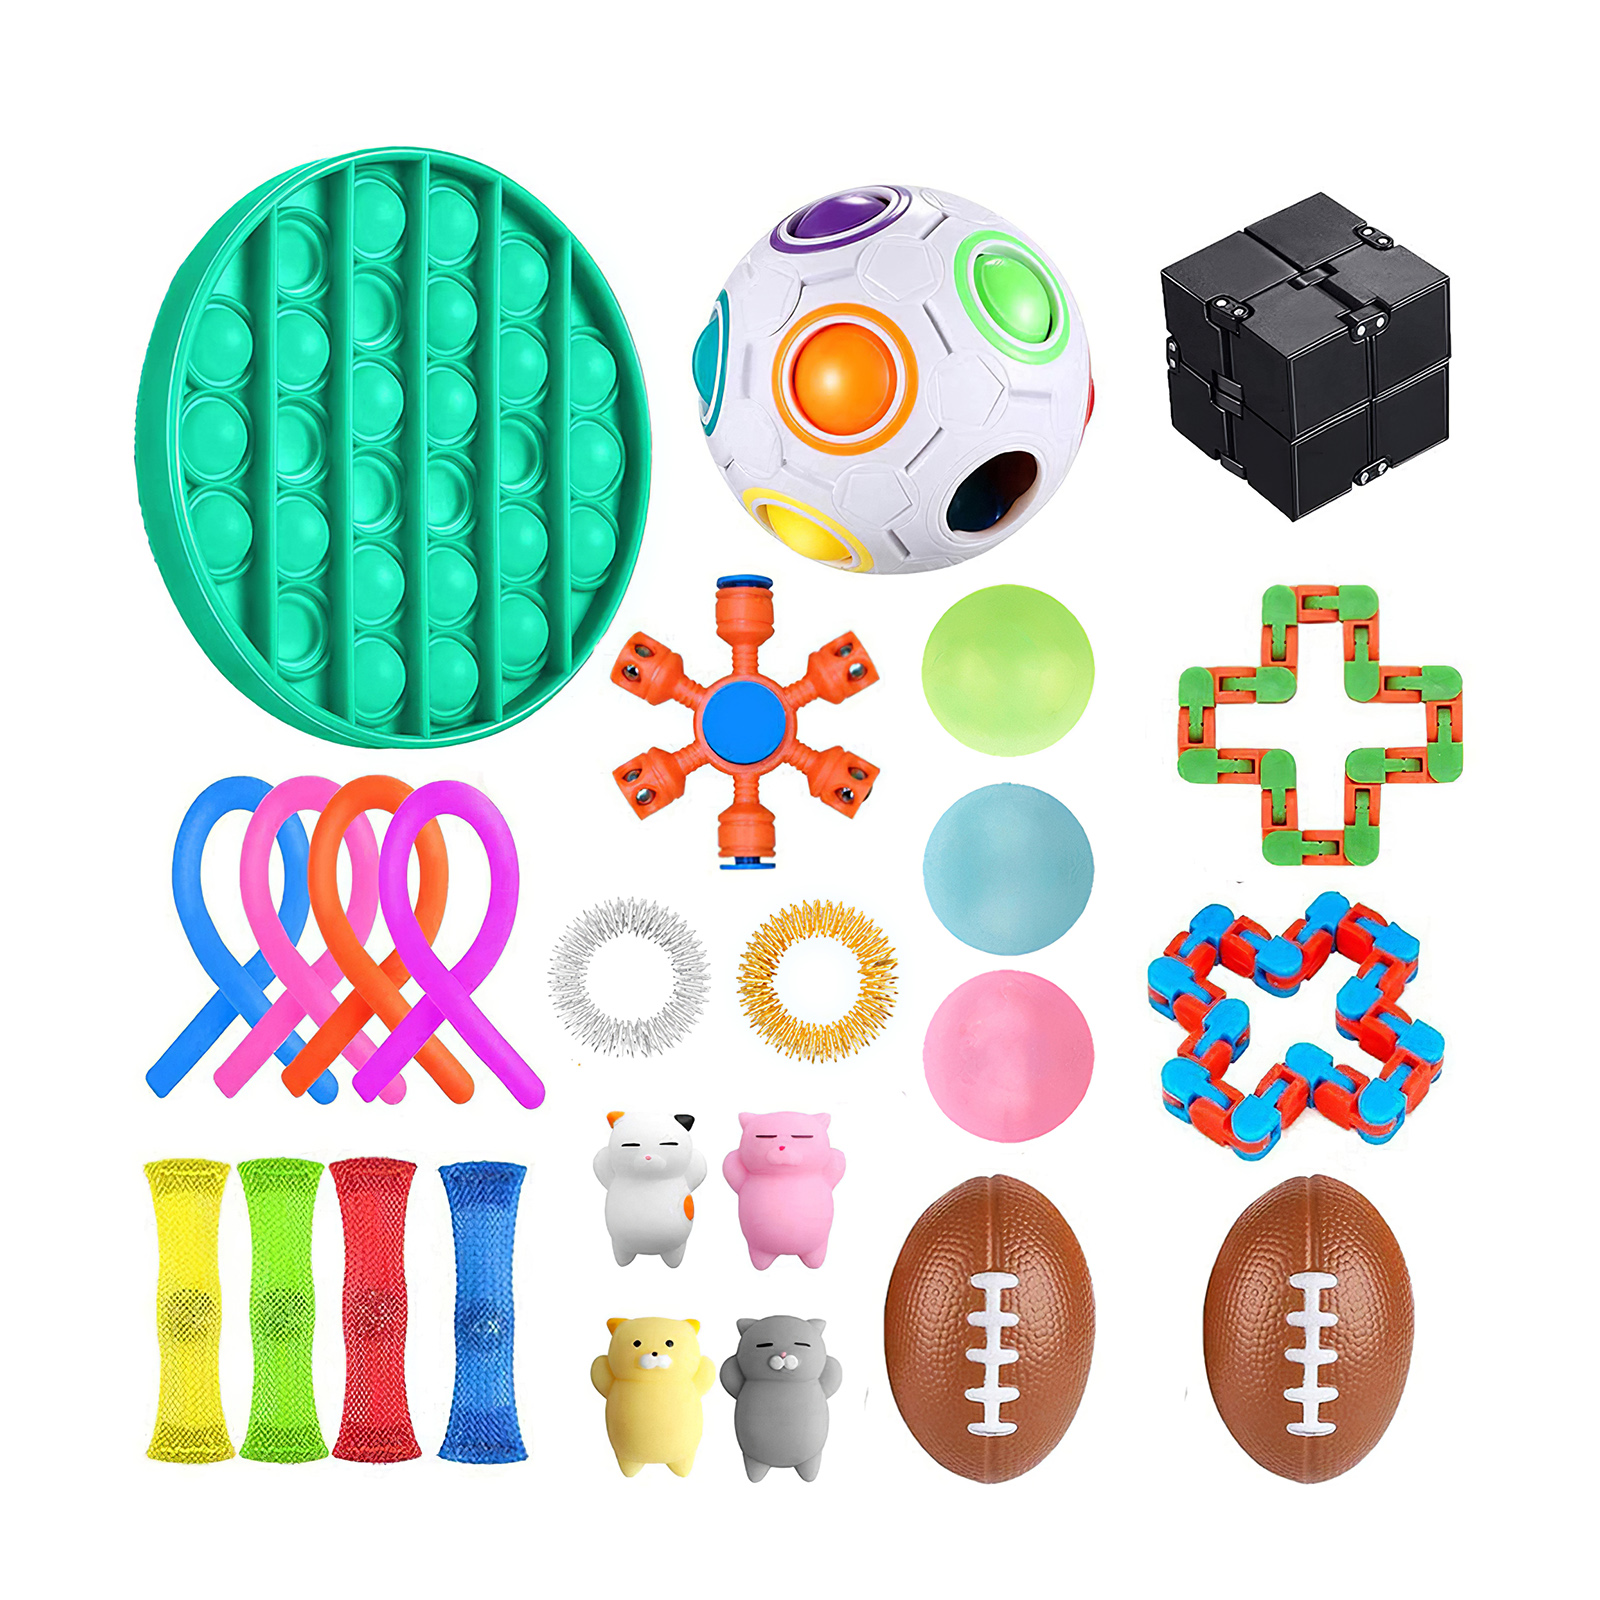 25 pack Fidget Sensory Toy Set Stress Relief Toys Autism Anxiety Relief Stress Pop Bubble